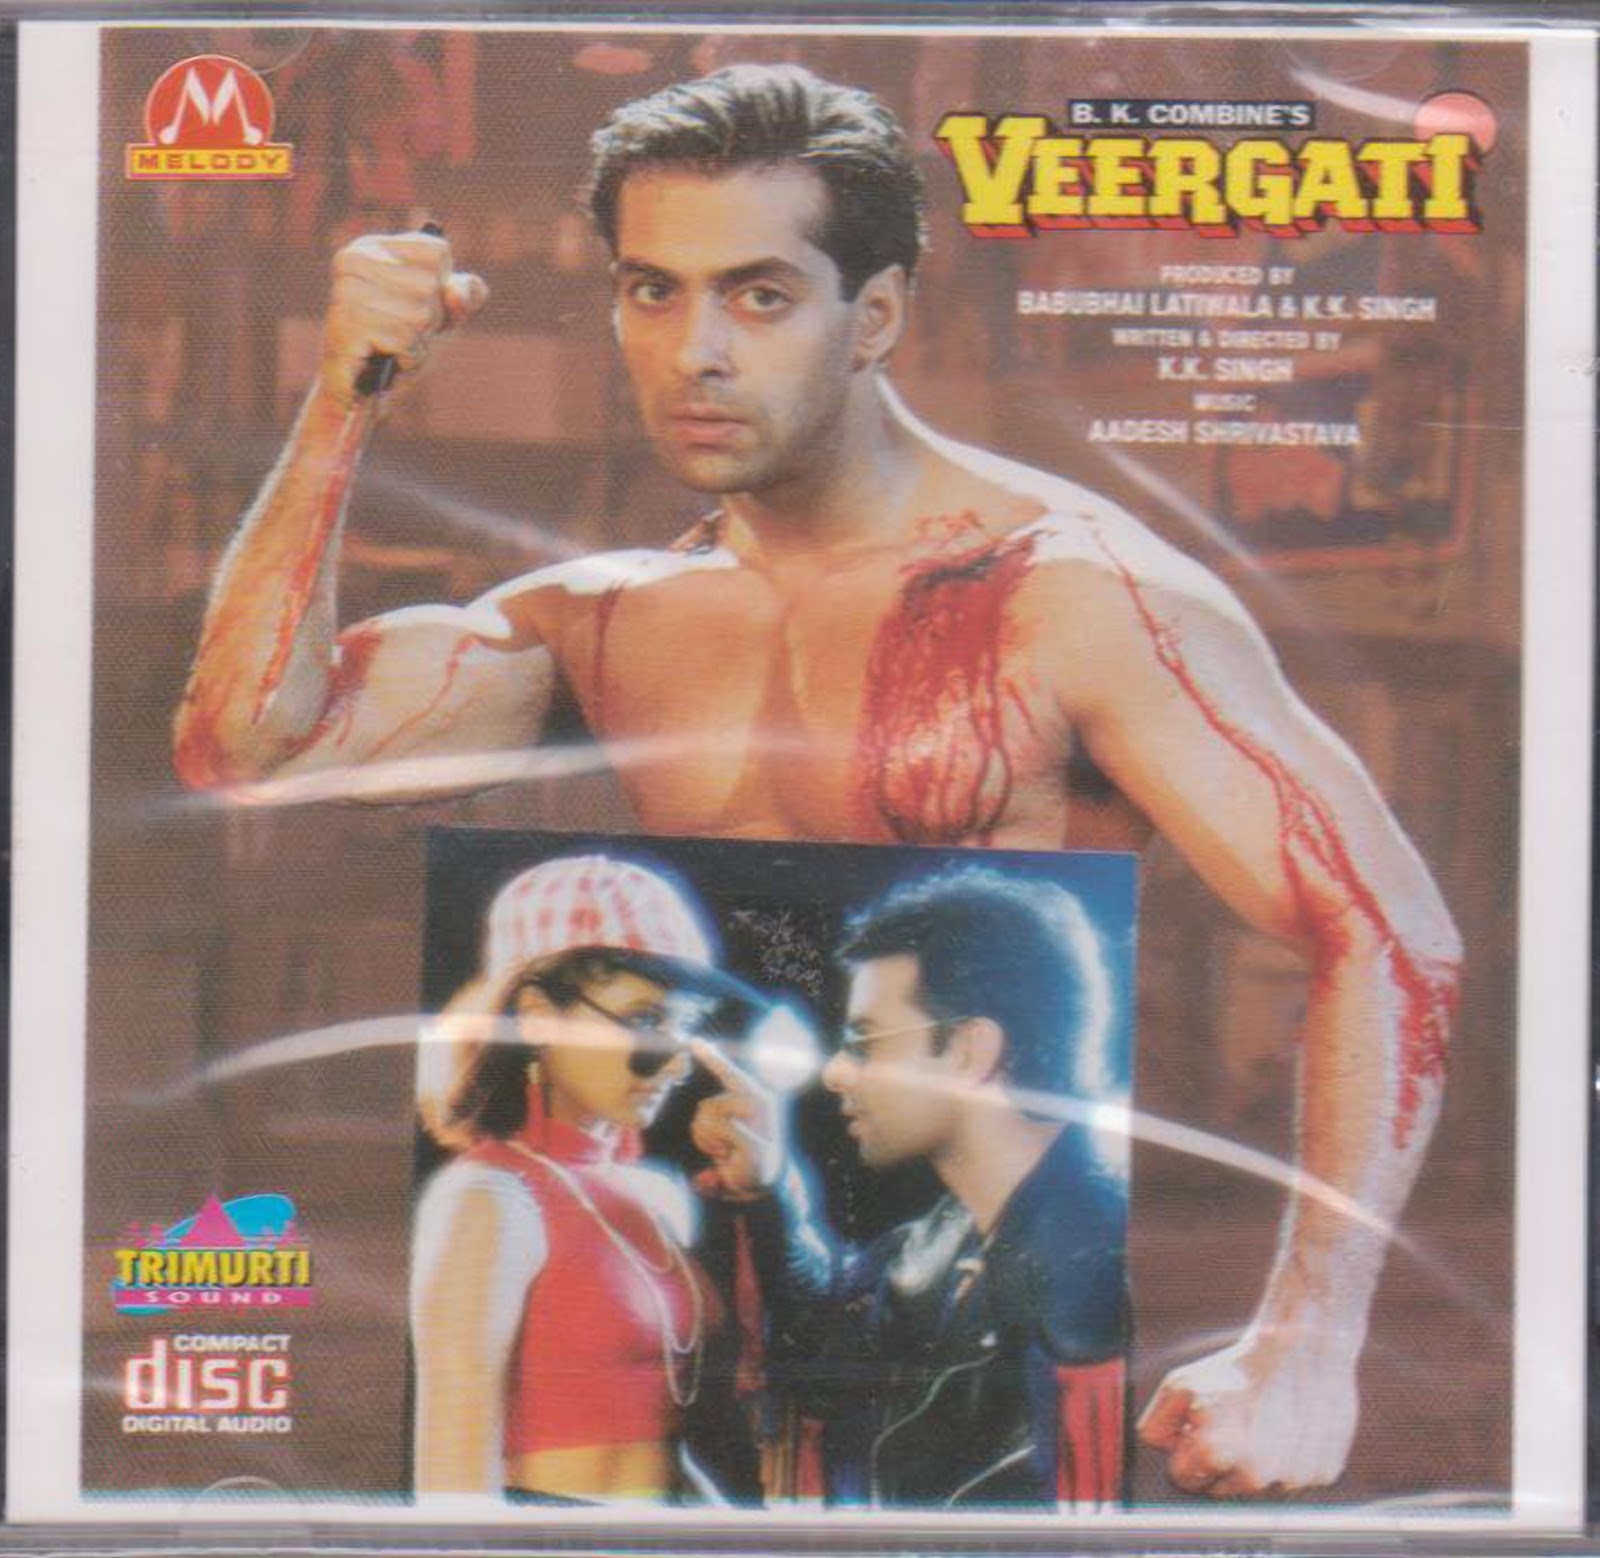 Koi Puche Mere Dil Se Full Mp3 Song Download: Renas.tk Mp3 (TKR): Veergati [1995-MP3-VBR-320Kbps]